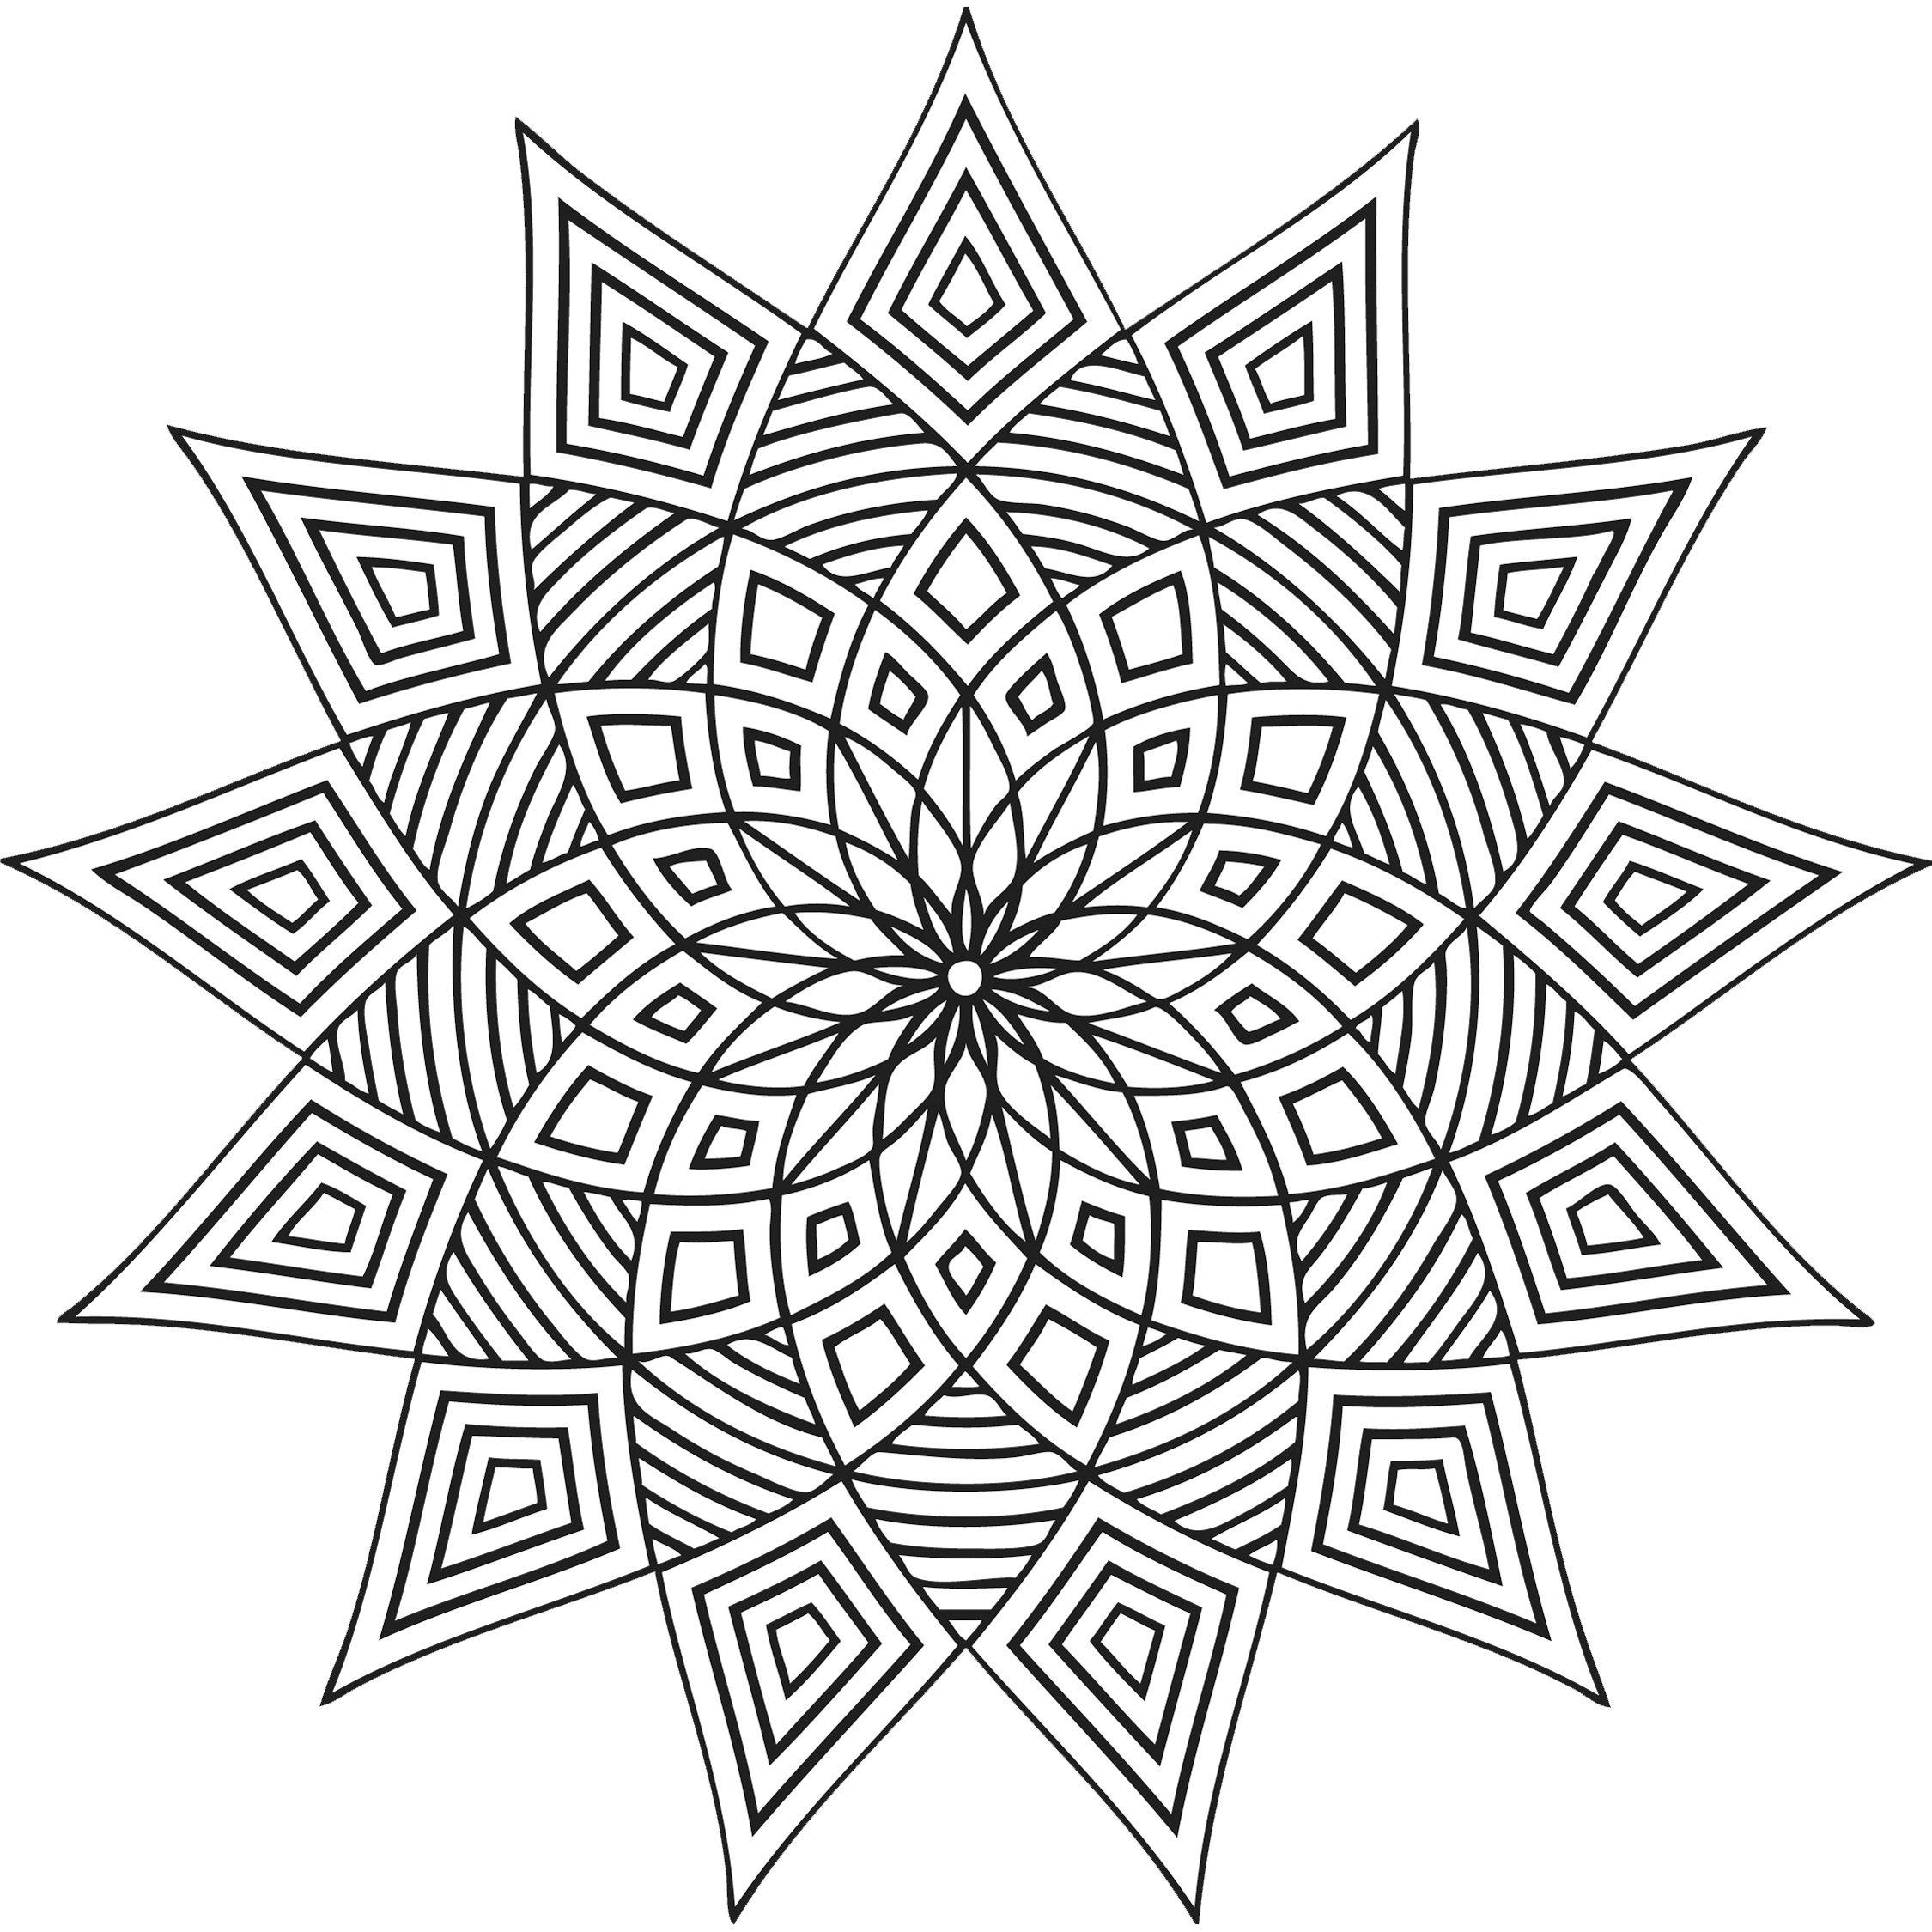 design art coloring pages geometric drawing designs at getdrawings free download pages art design coloring